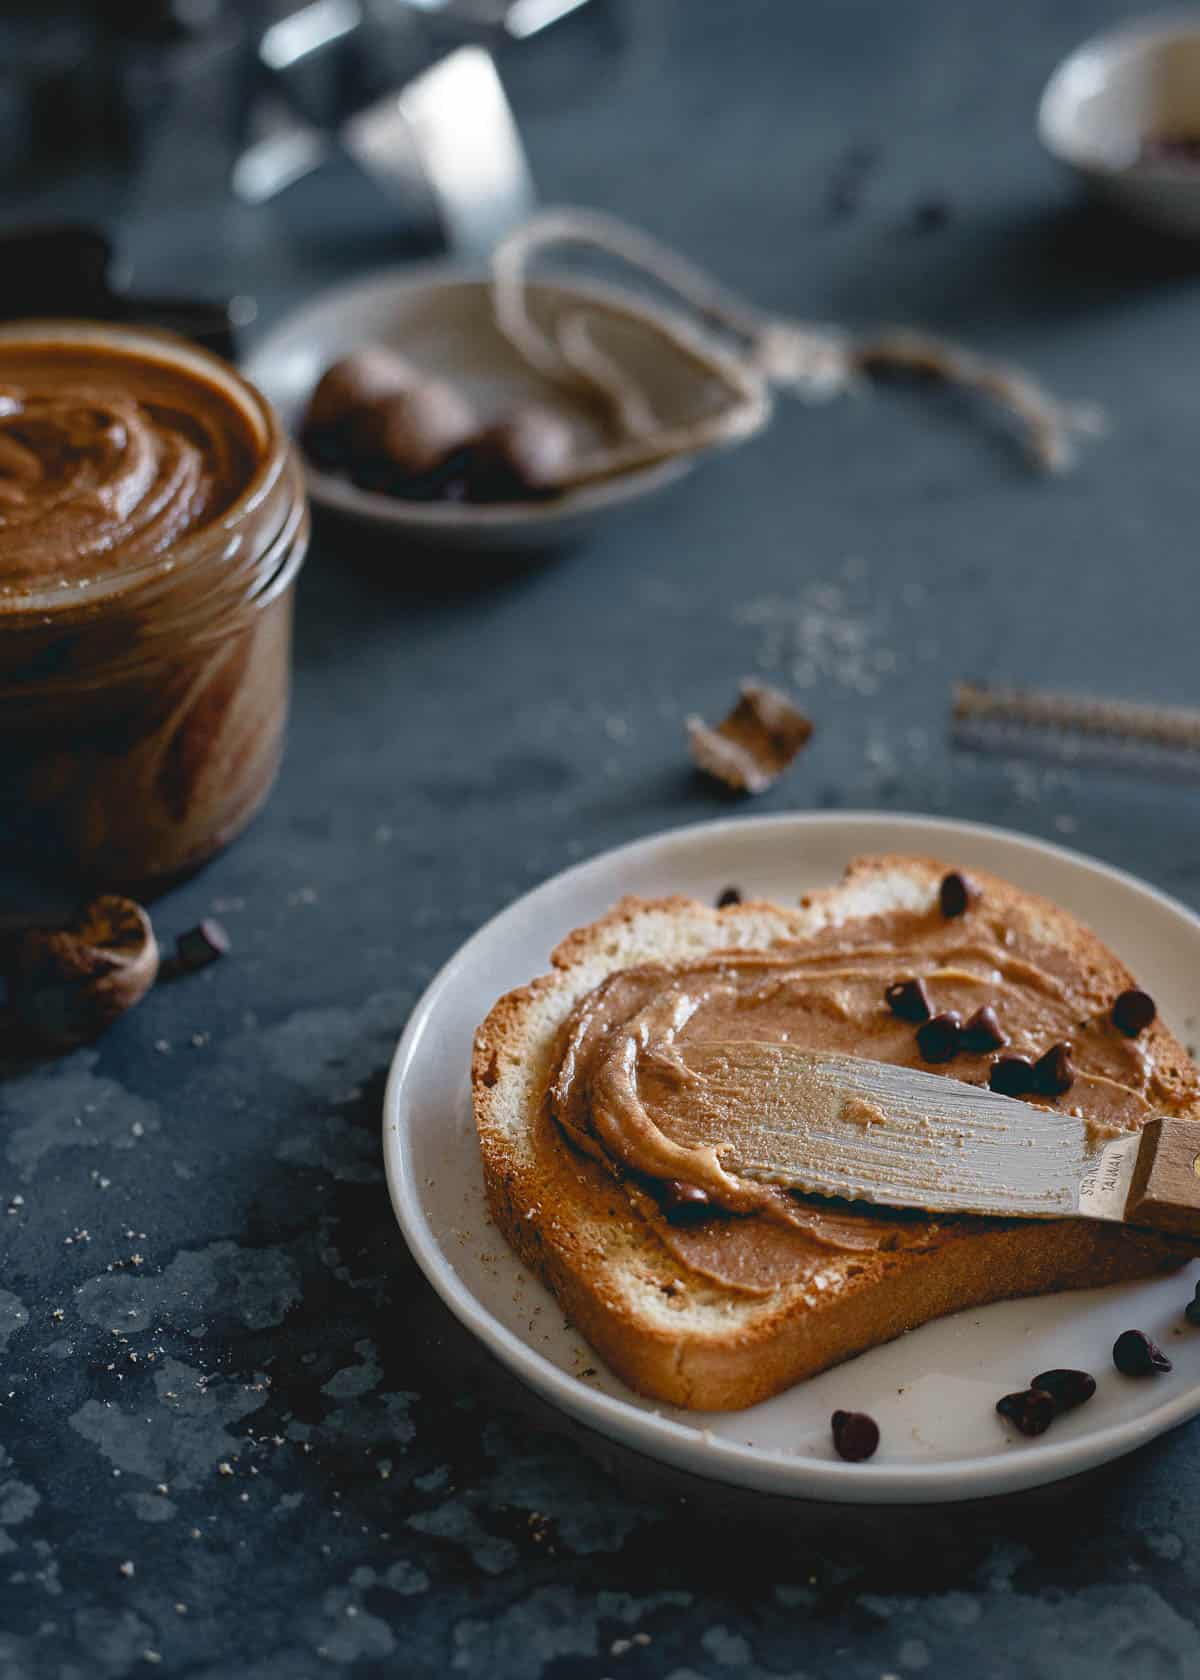 This creamy gingerbread peanut butter is made with molasses roasted peanuts, holiday spices and optional chocolate chips. Enjoy it this holiday season on toast, dolloped in oatmeal or straight from the jar with a spoon!